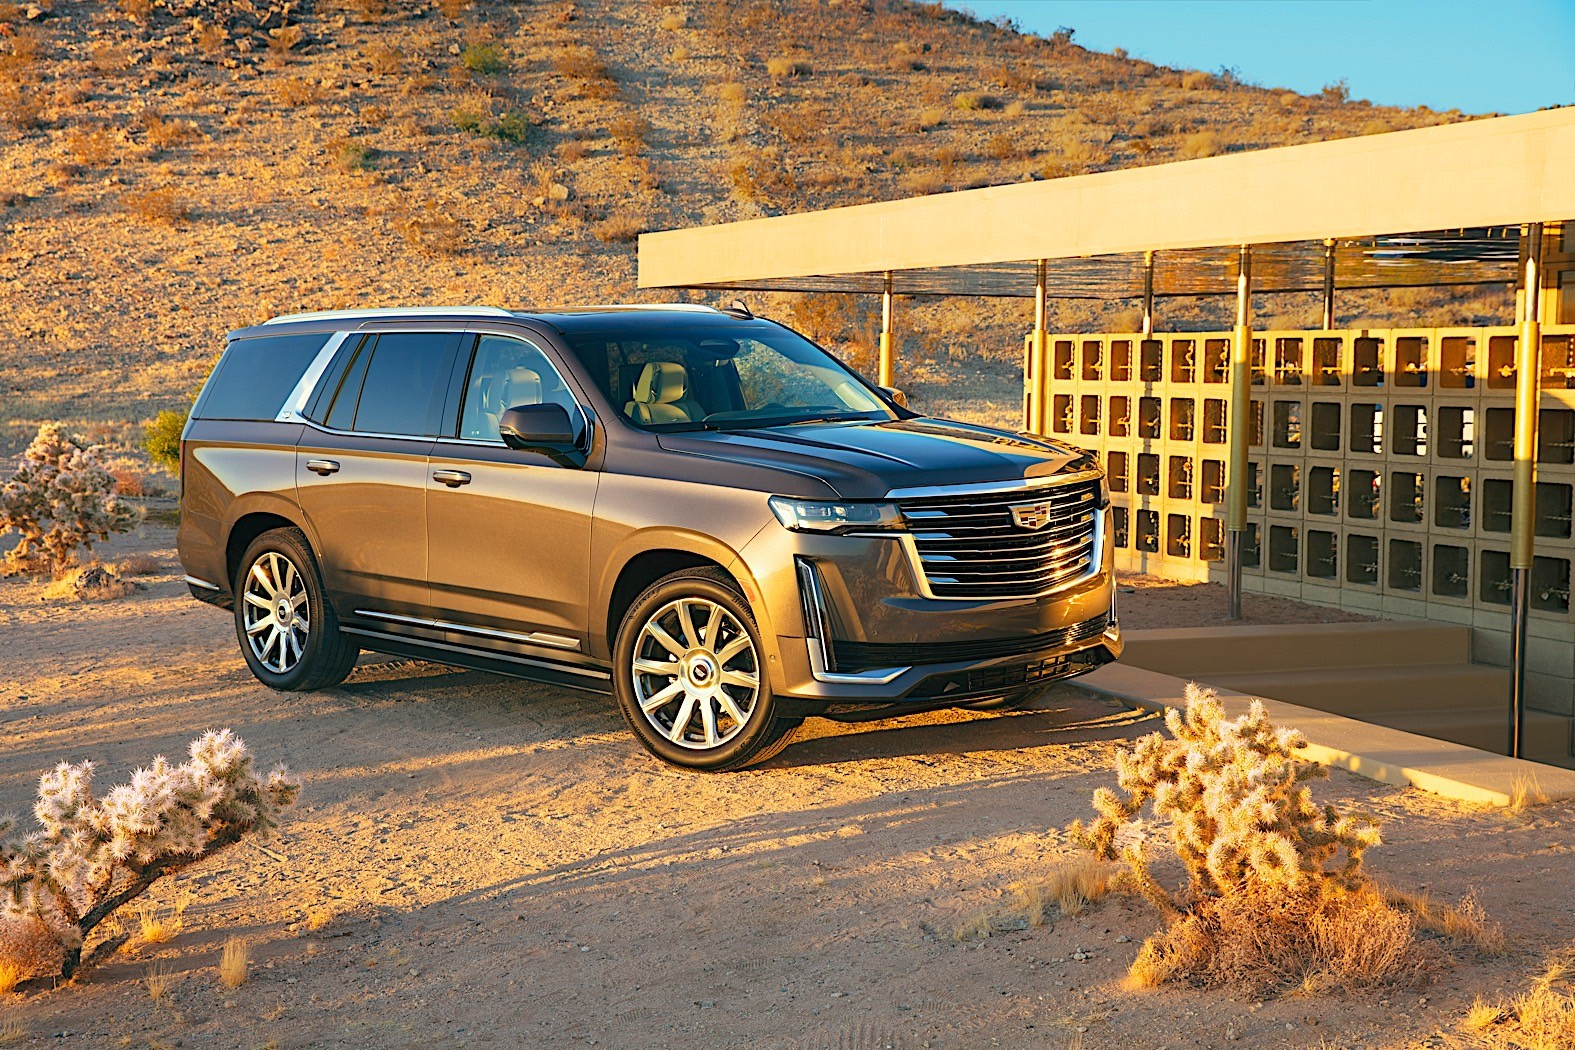 2022 Cadillac Escalade V Rendered, Would Ideally Feature ...